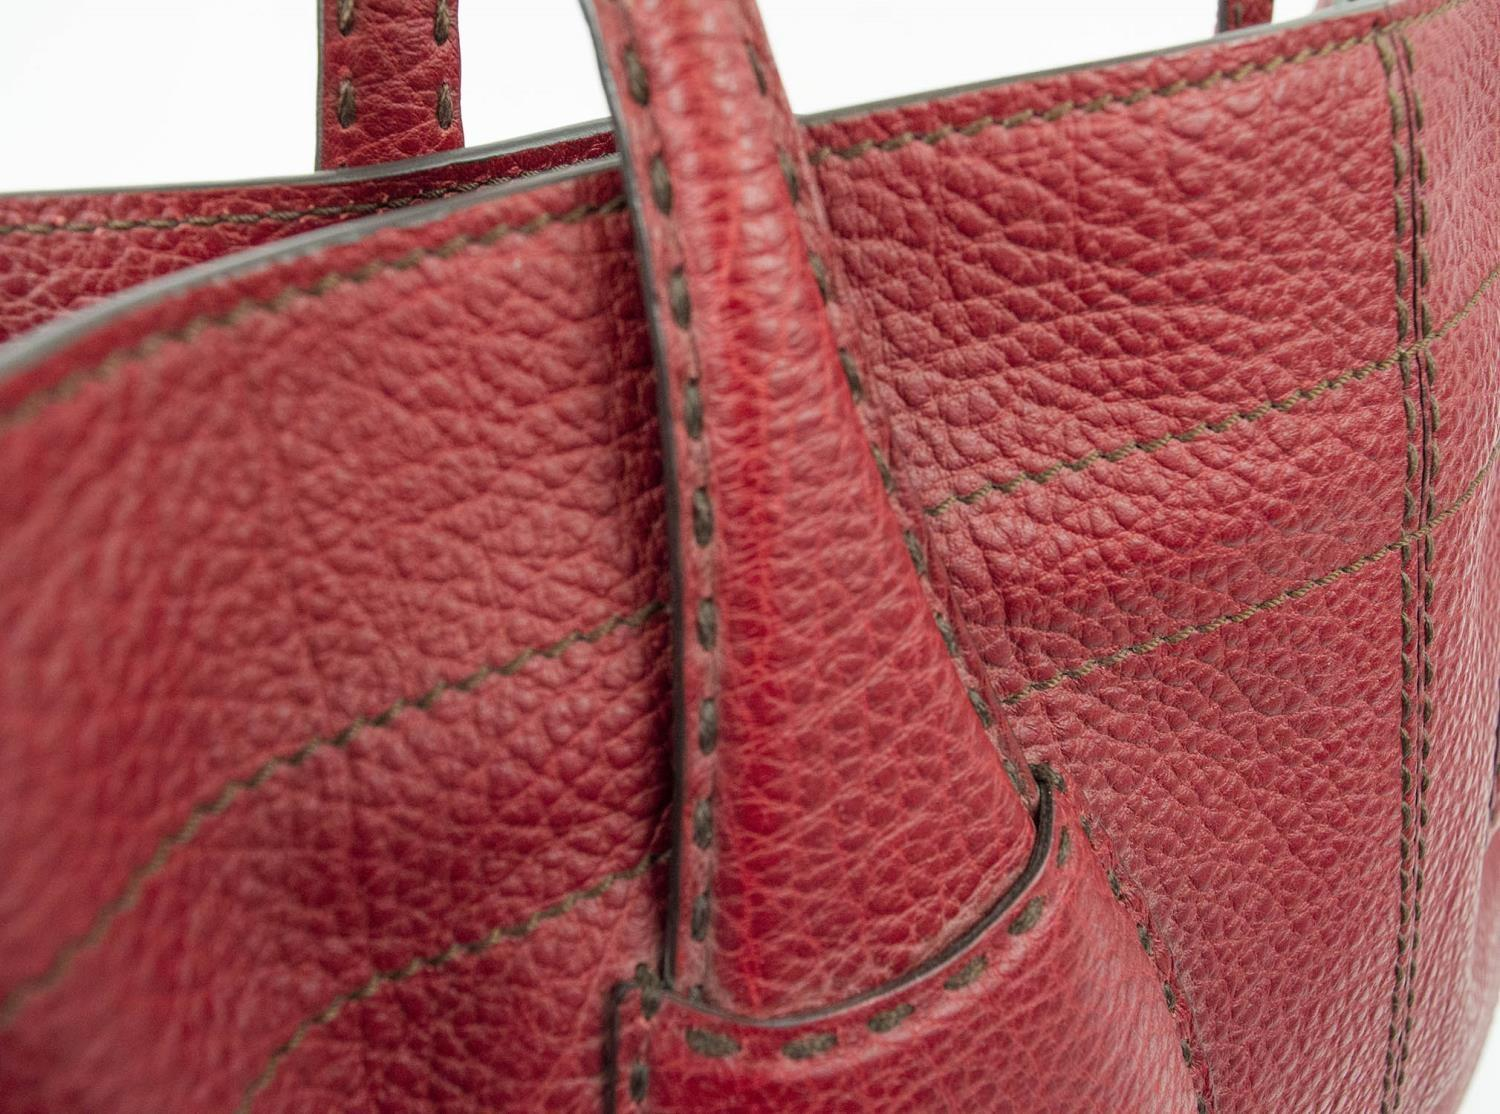 TOD'S DRAWSTRING TOTE BAG, leather with optional tightening drawstring closure, silver tone bottom - Image 3 of 8